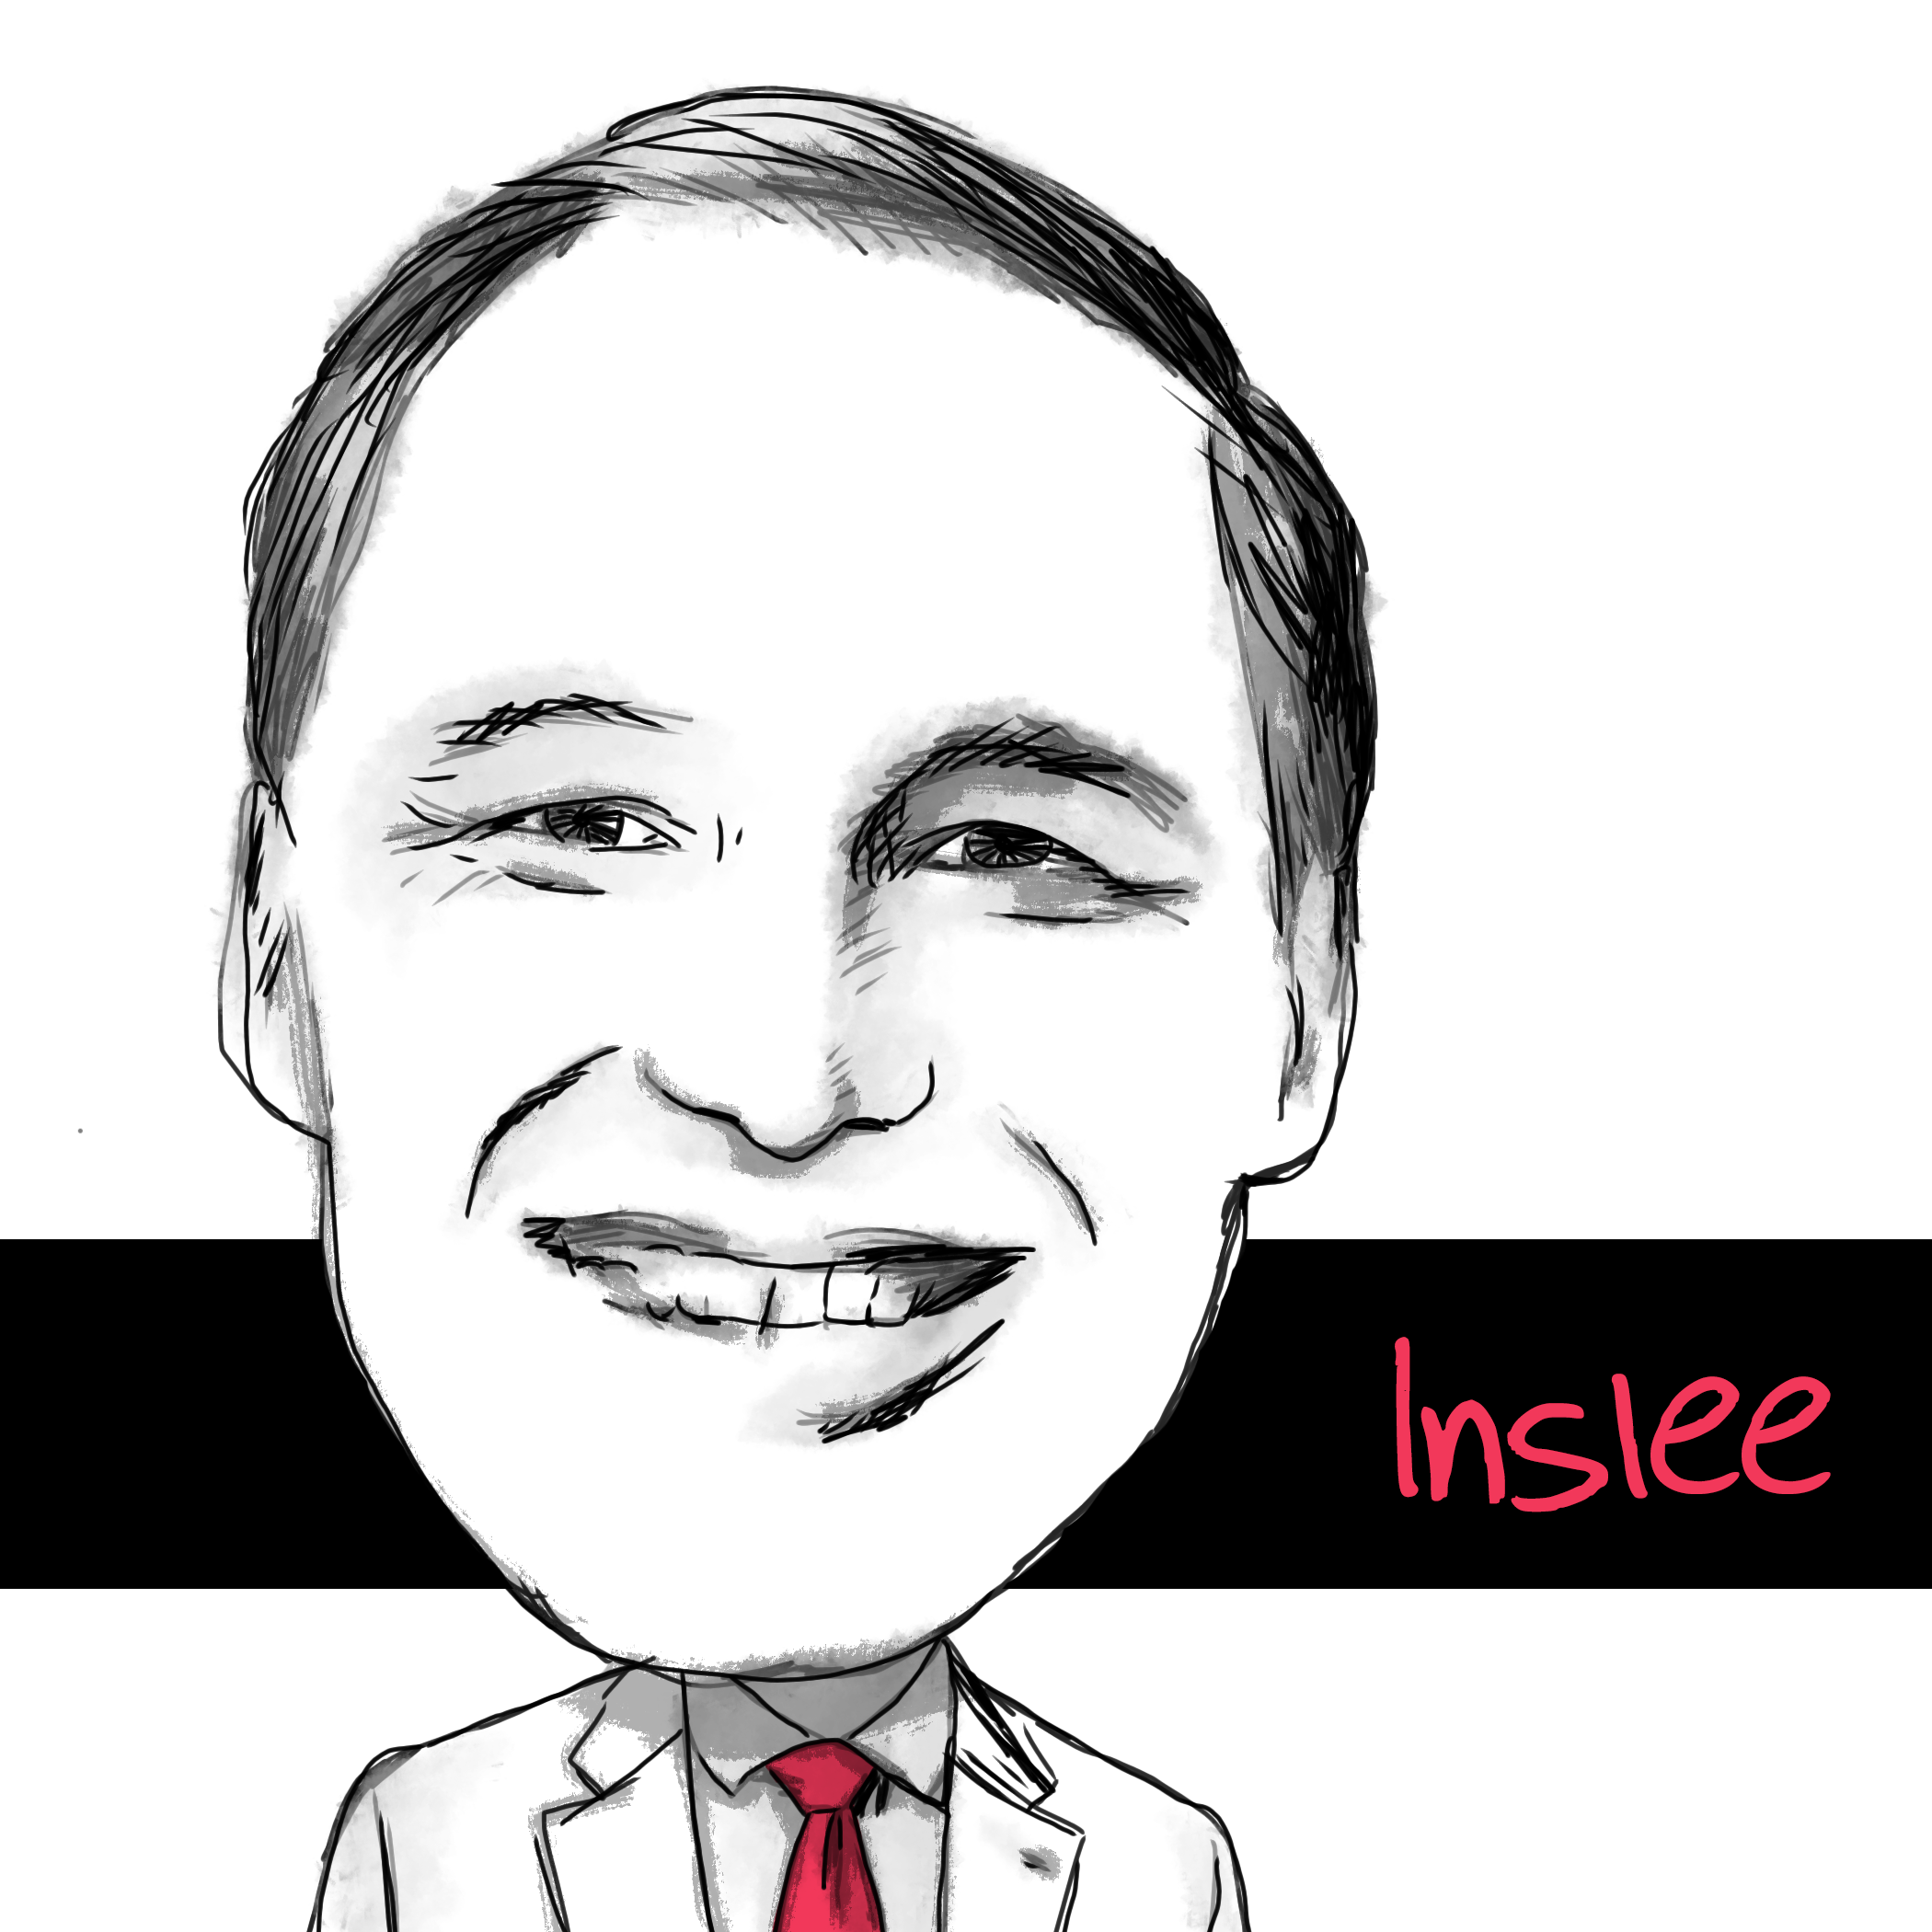 Jay Inselee - Inslee For America - https://jayinslee.com